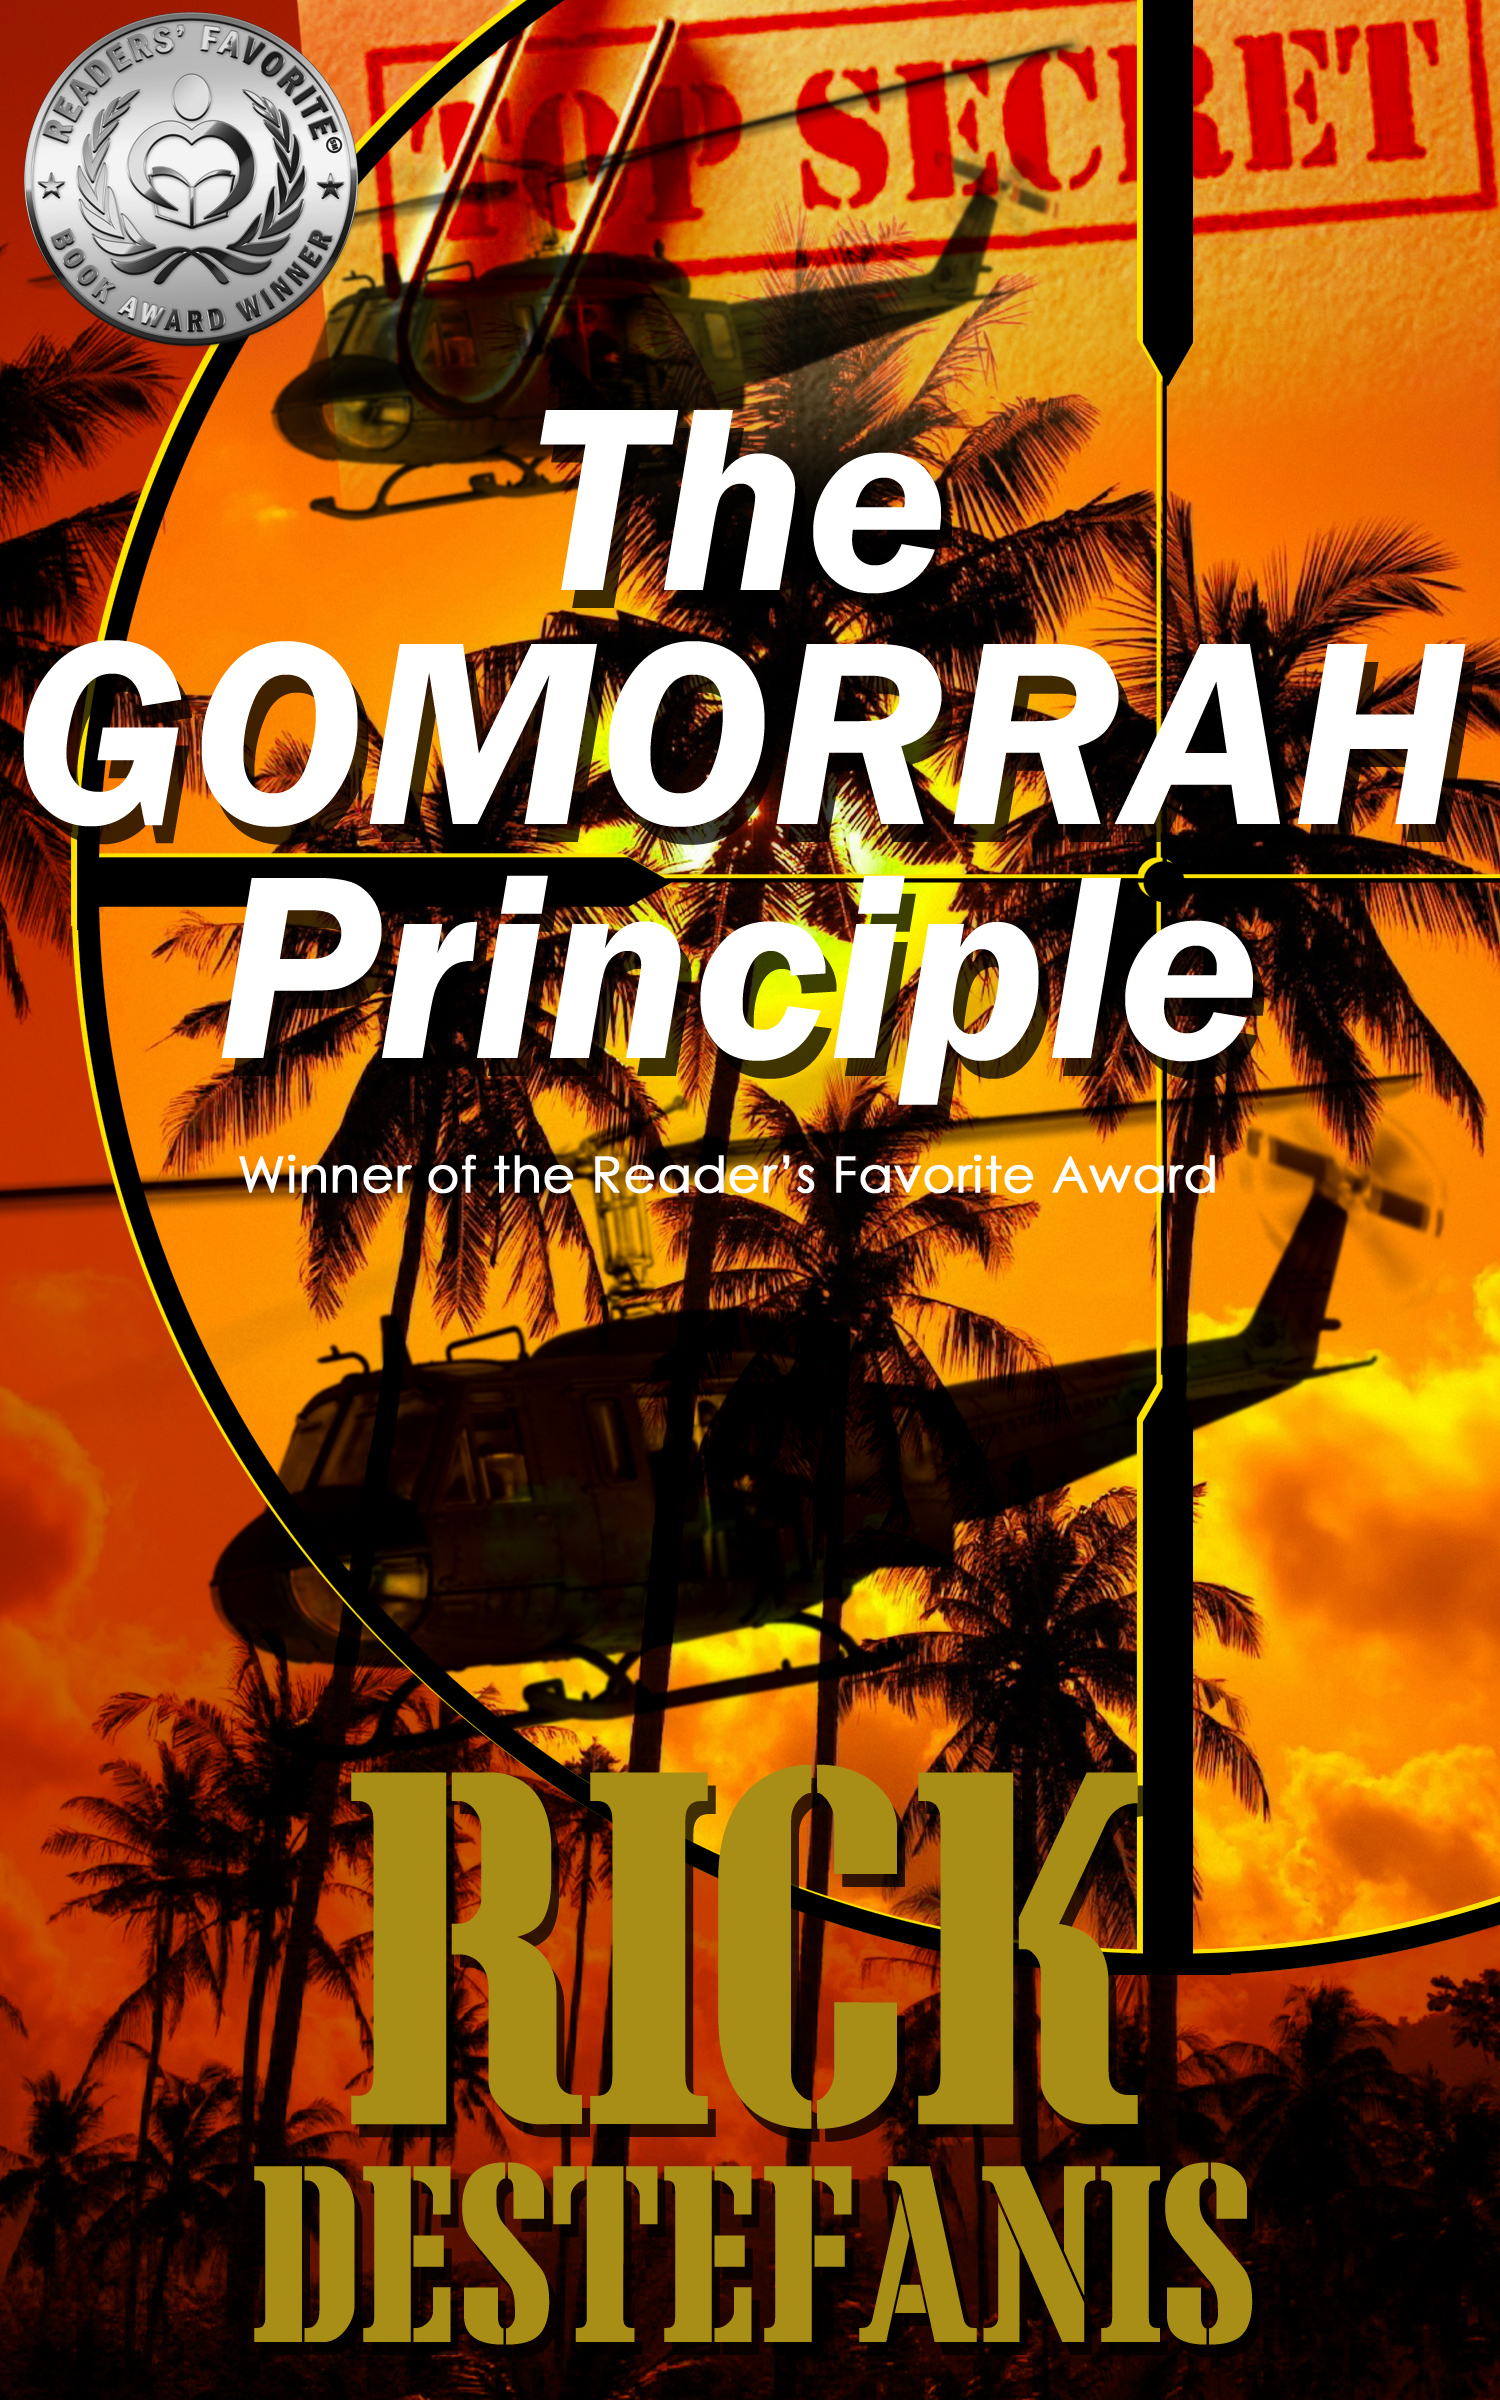 The Gomorrah Principle by Rick DeStefanis book cover image.